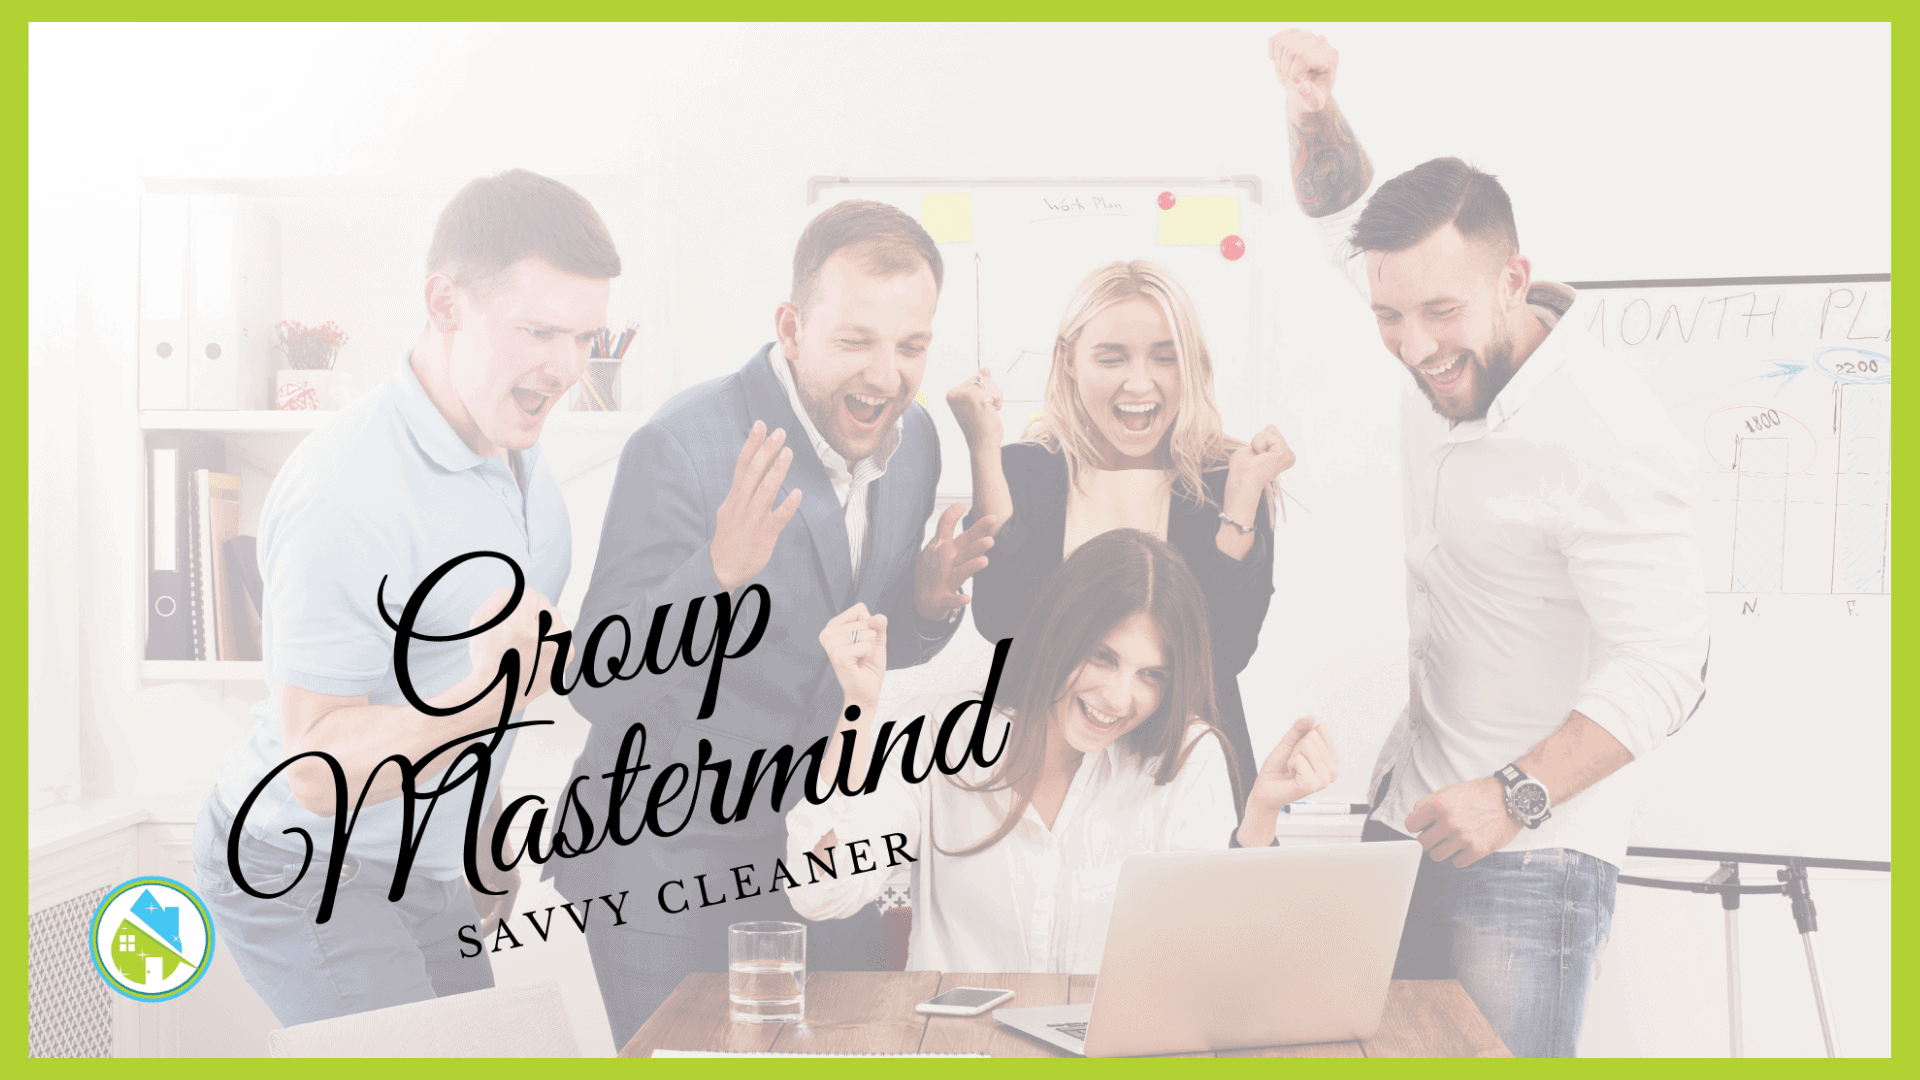 Savvy Cleaner Group Mastermind 8-25-2021 with Angela Brown